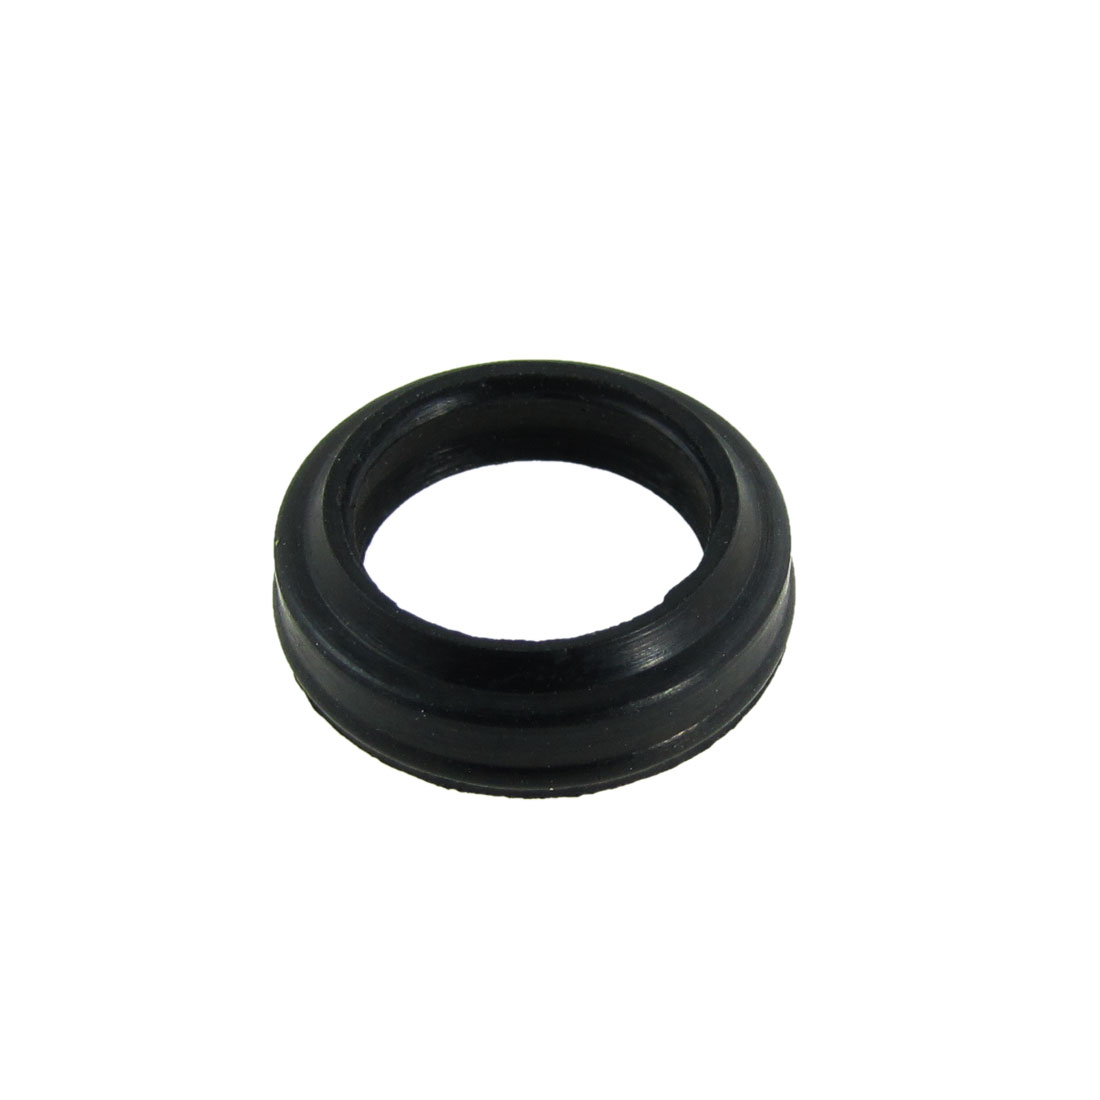 18mm x 12mm x 5mm Double Lip Pneumatic Wiper Sealing Dust Seal